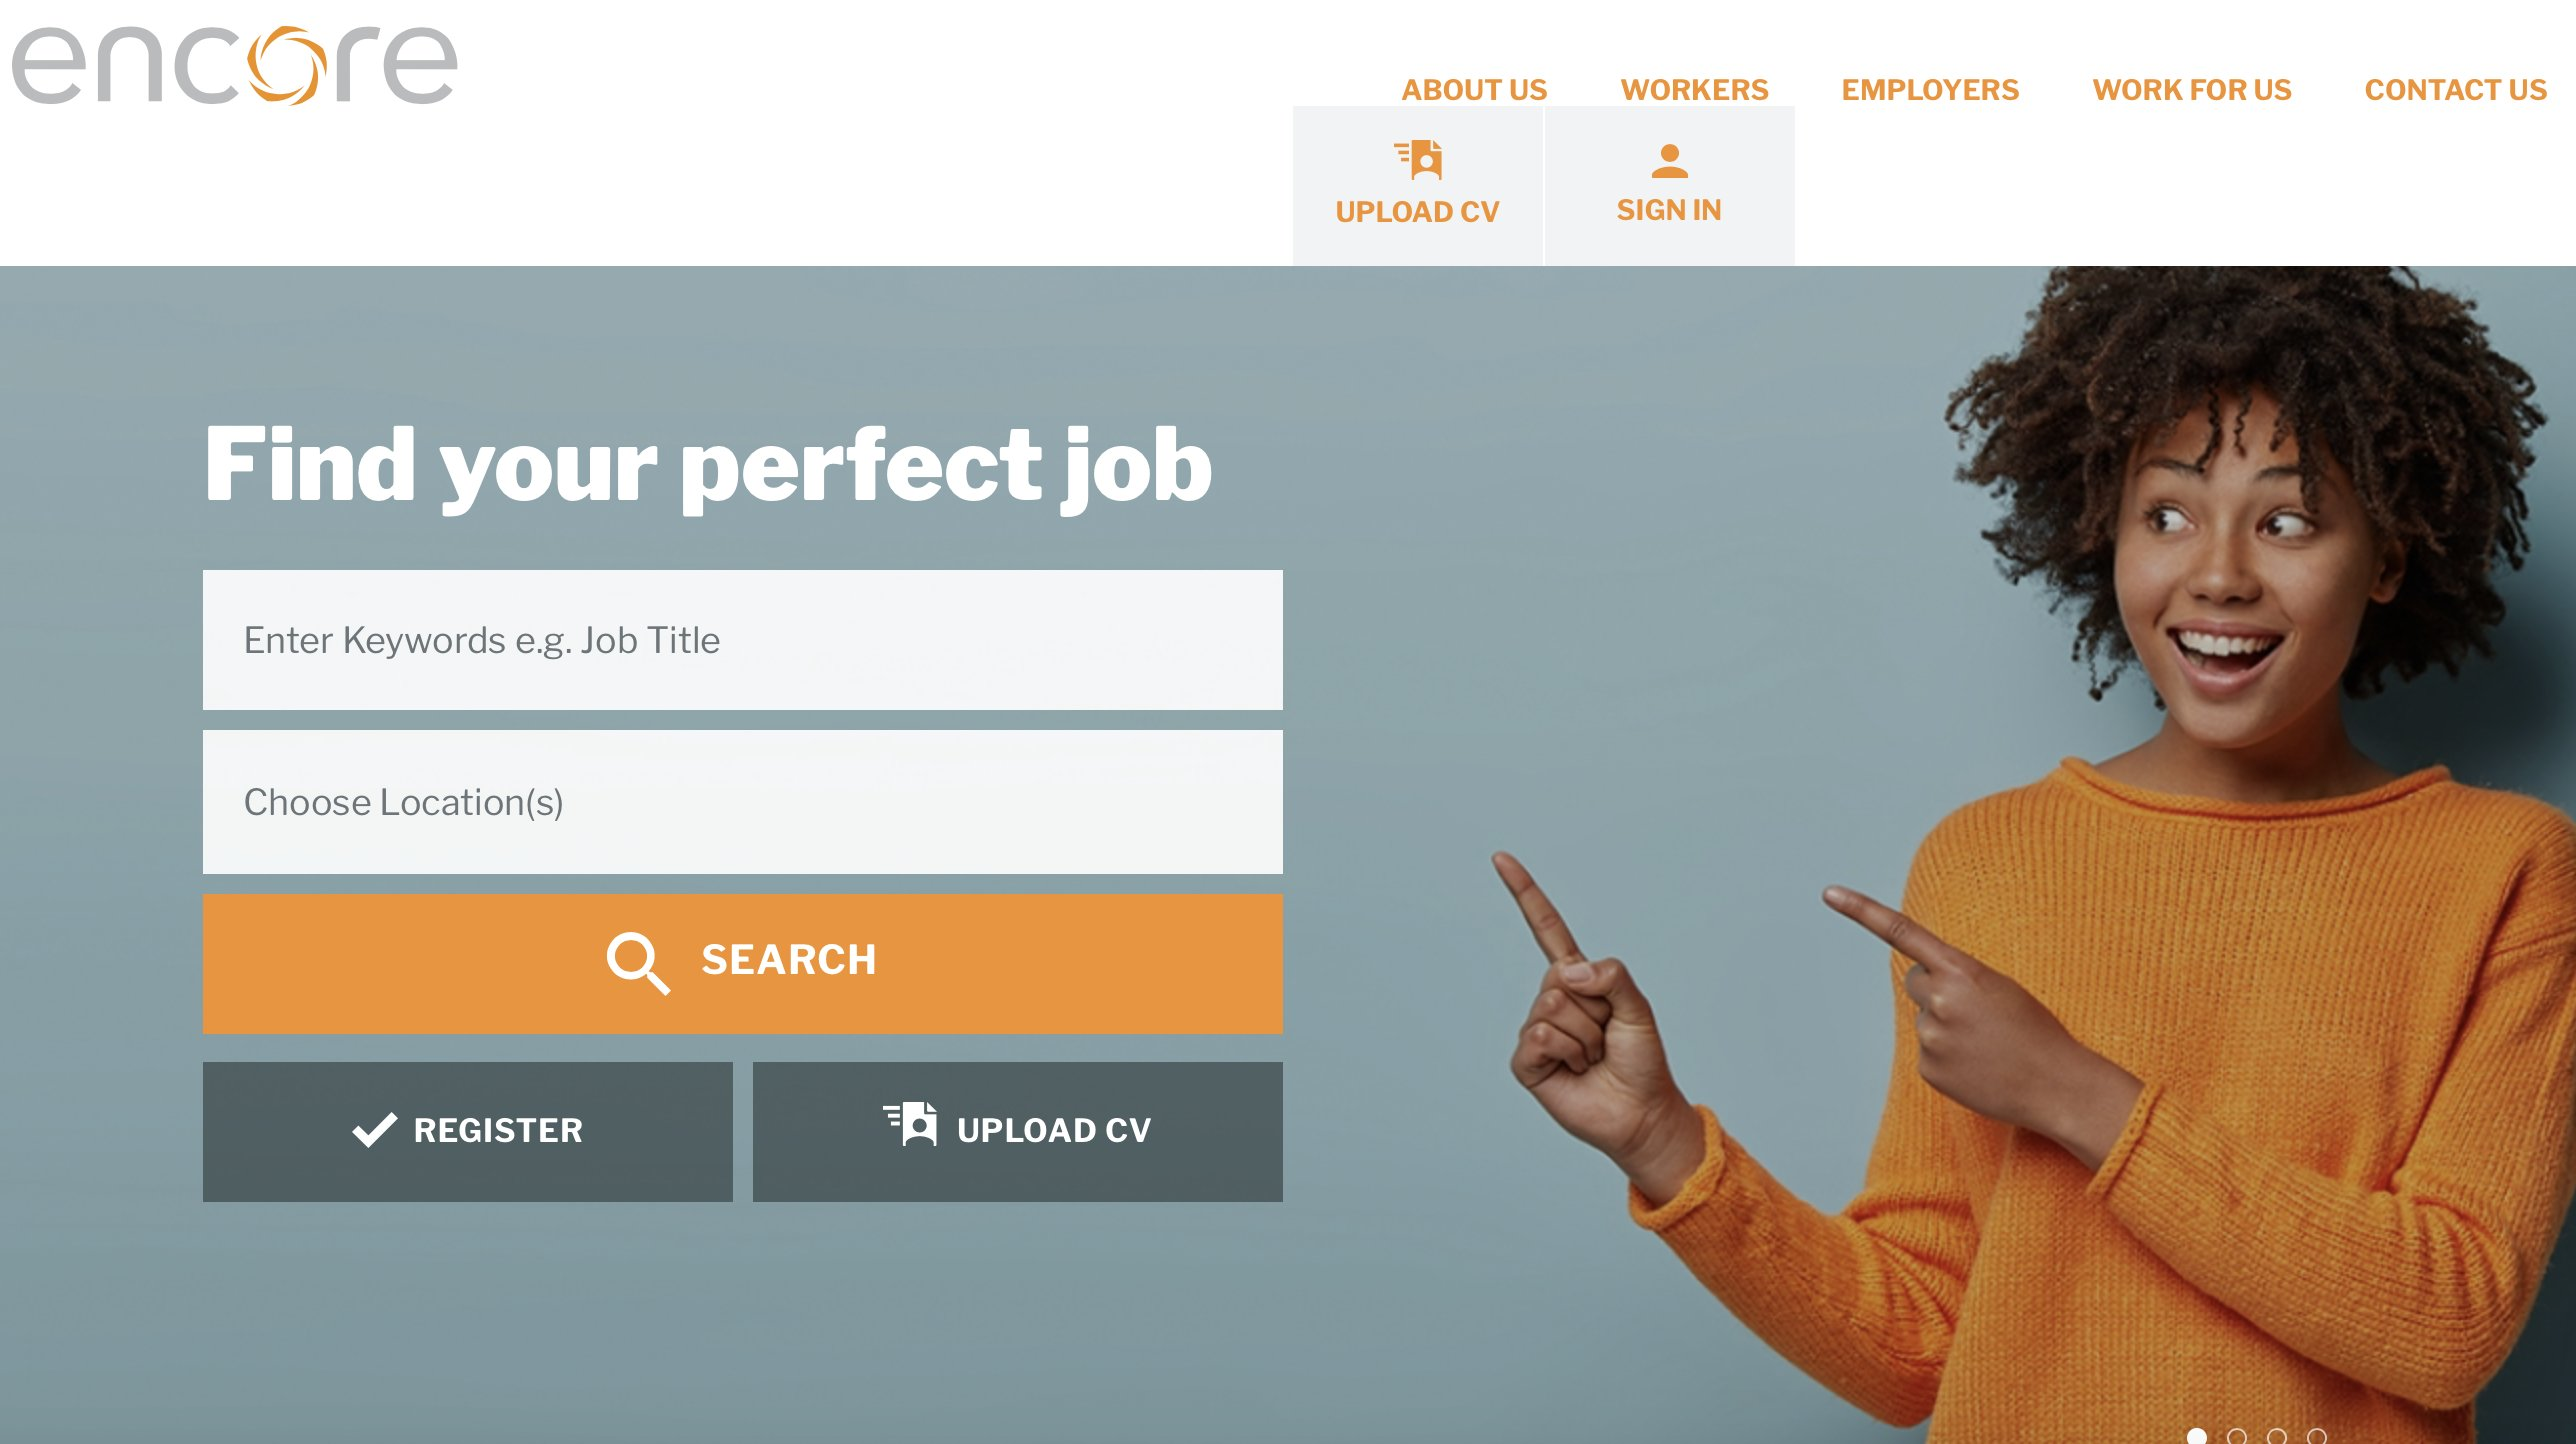 East Midlands Recruiter Launches Innovative New Website for Fast-Track Job Applications